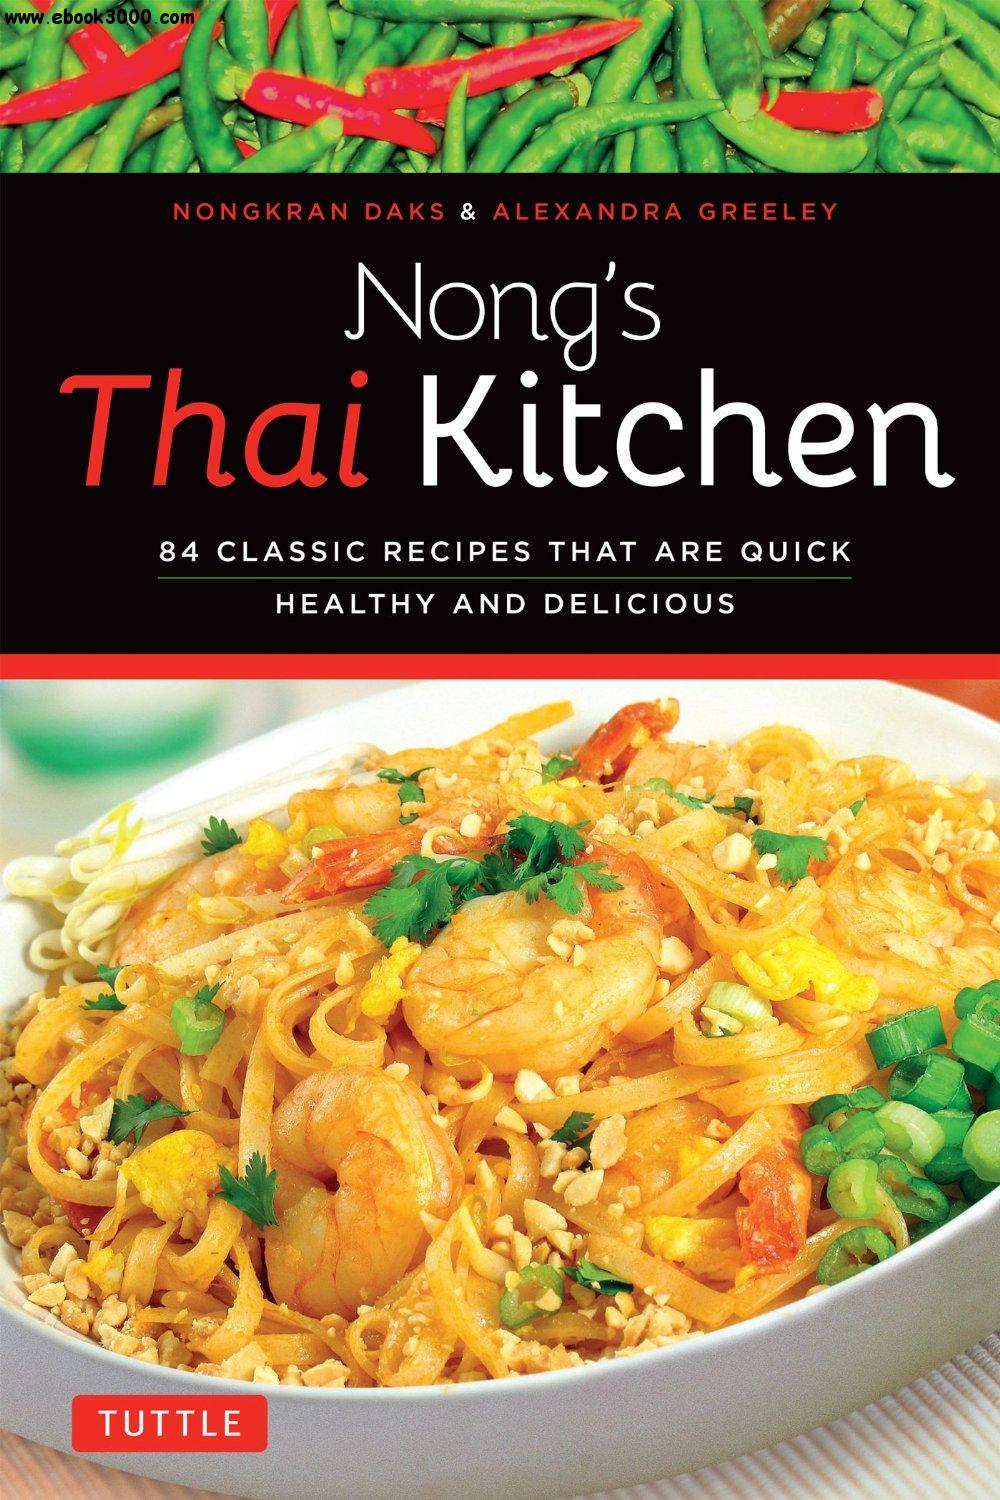 Nong's Thai Kitchen: 84 Classic Recipes That are Quick, Healthy and Delicious free download